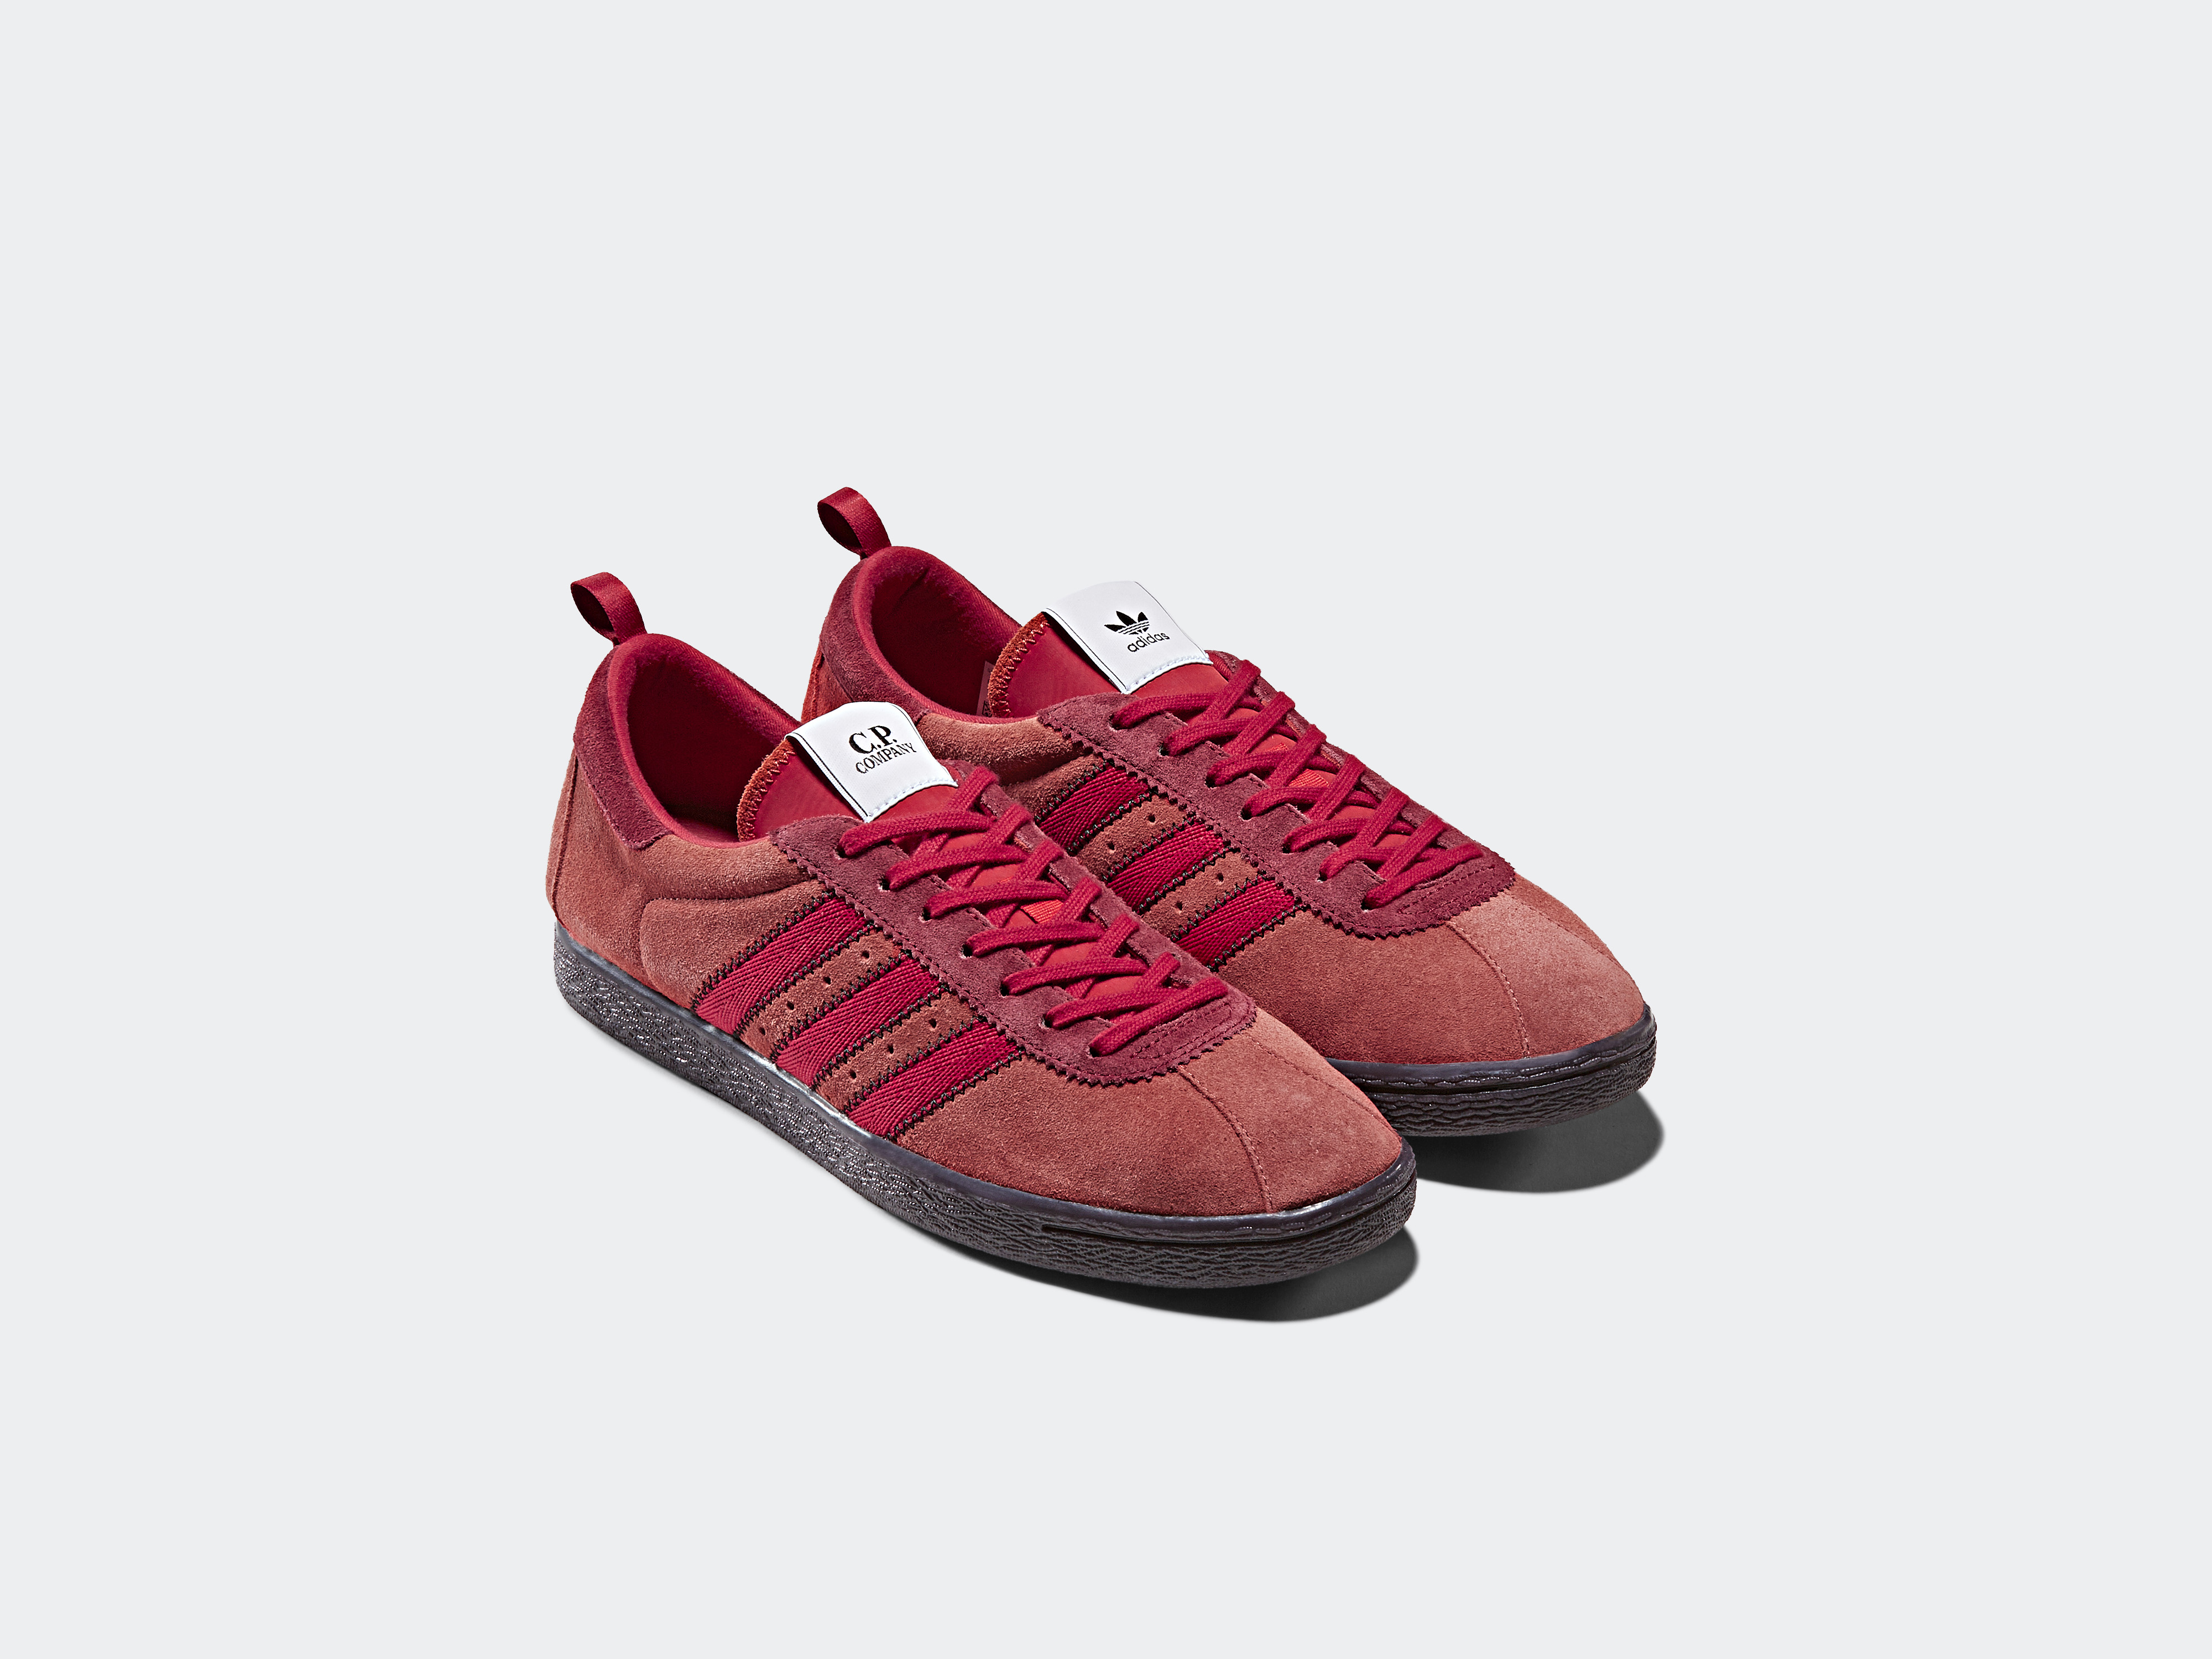 wholesale dealer c1522 41017 Latest adidas & C.P. Company Sneakers: Where to Buy Online